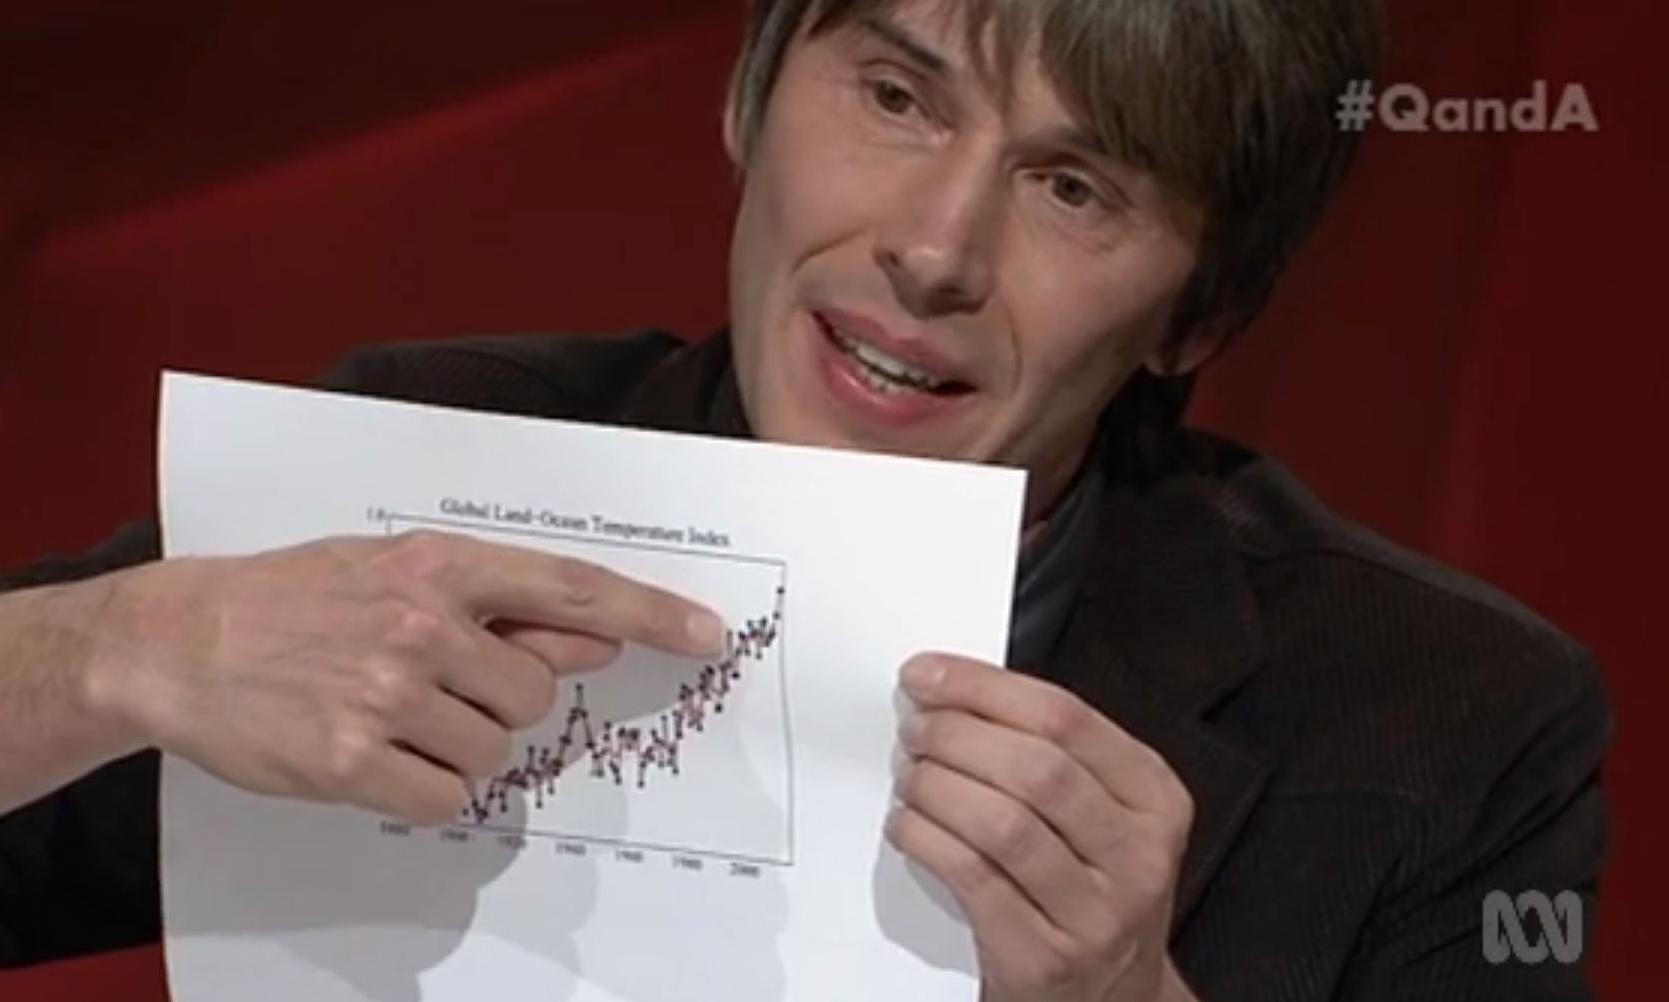 Q&A smackdown: Brian Cox brings graphs to grapple with Malcolm Roberts